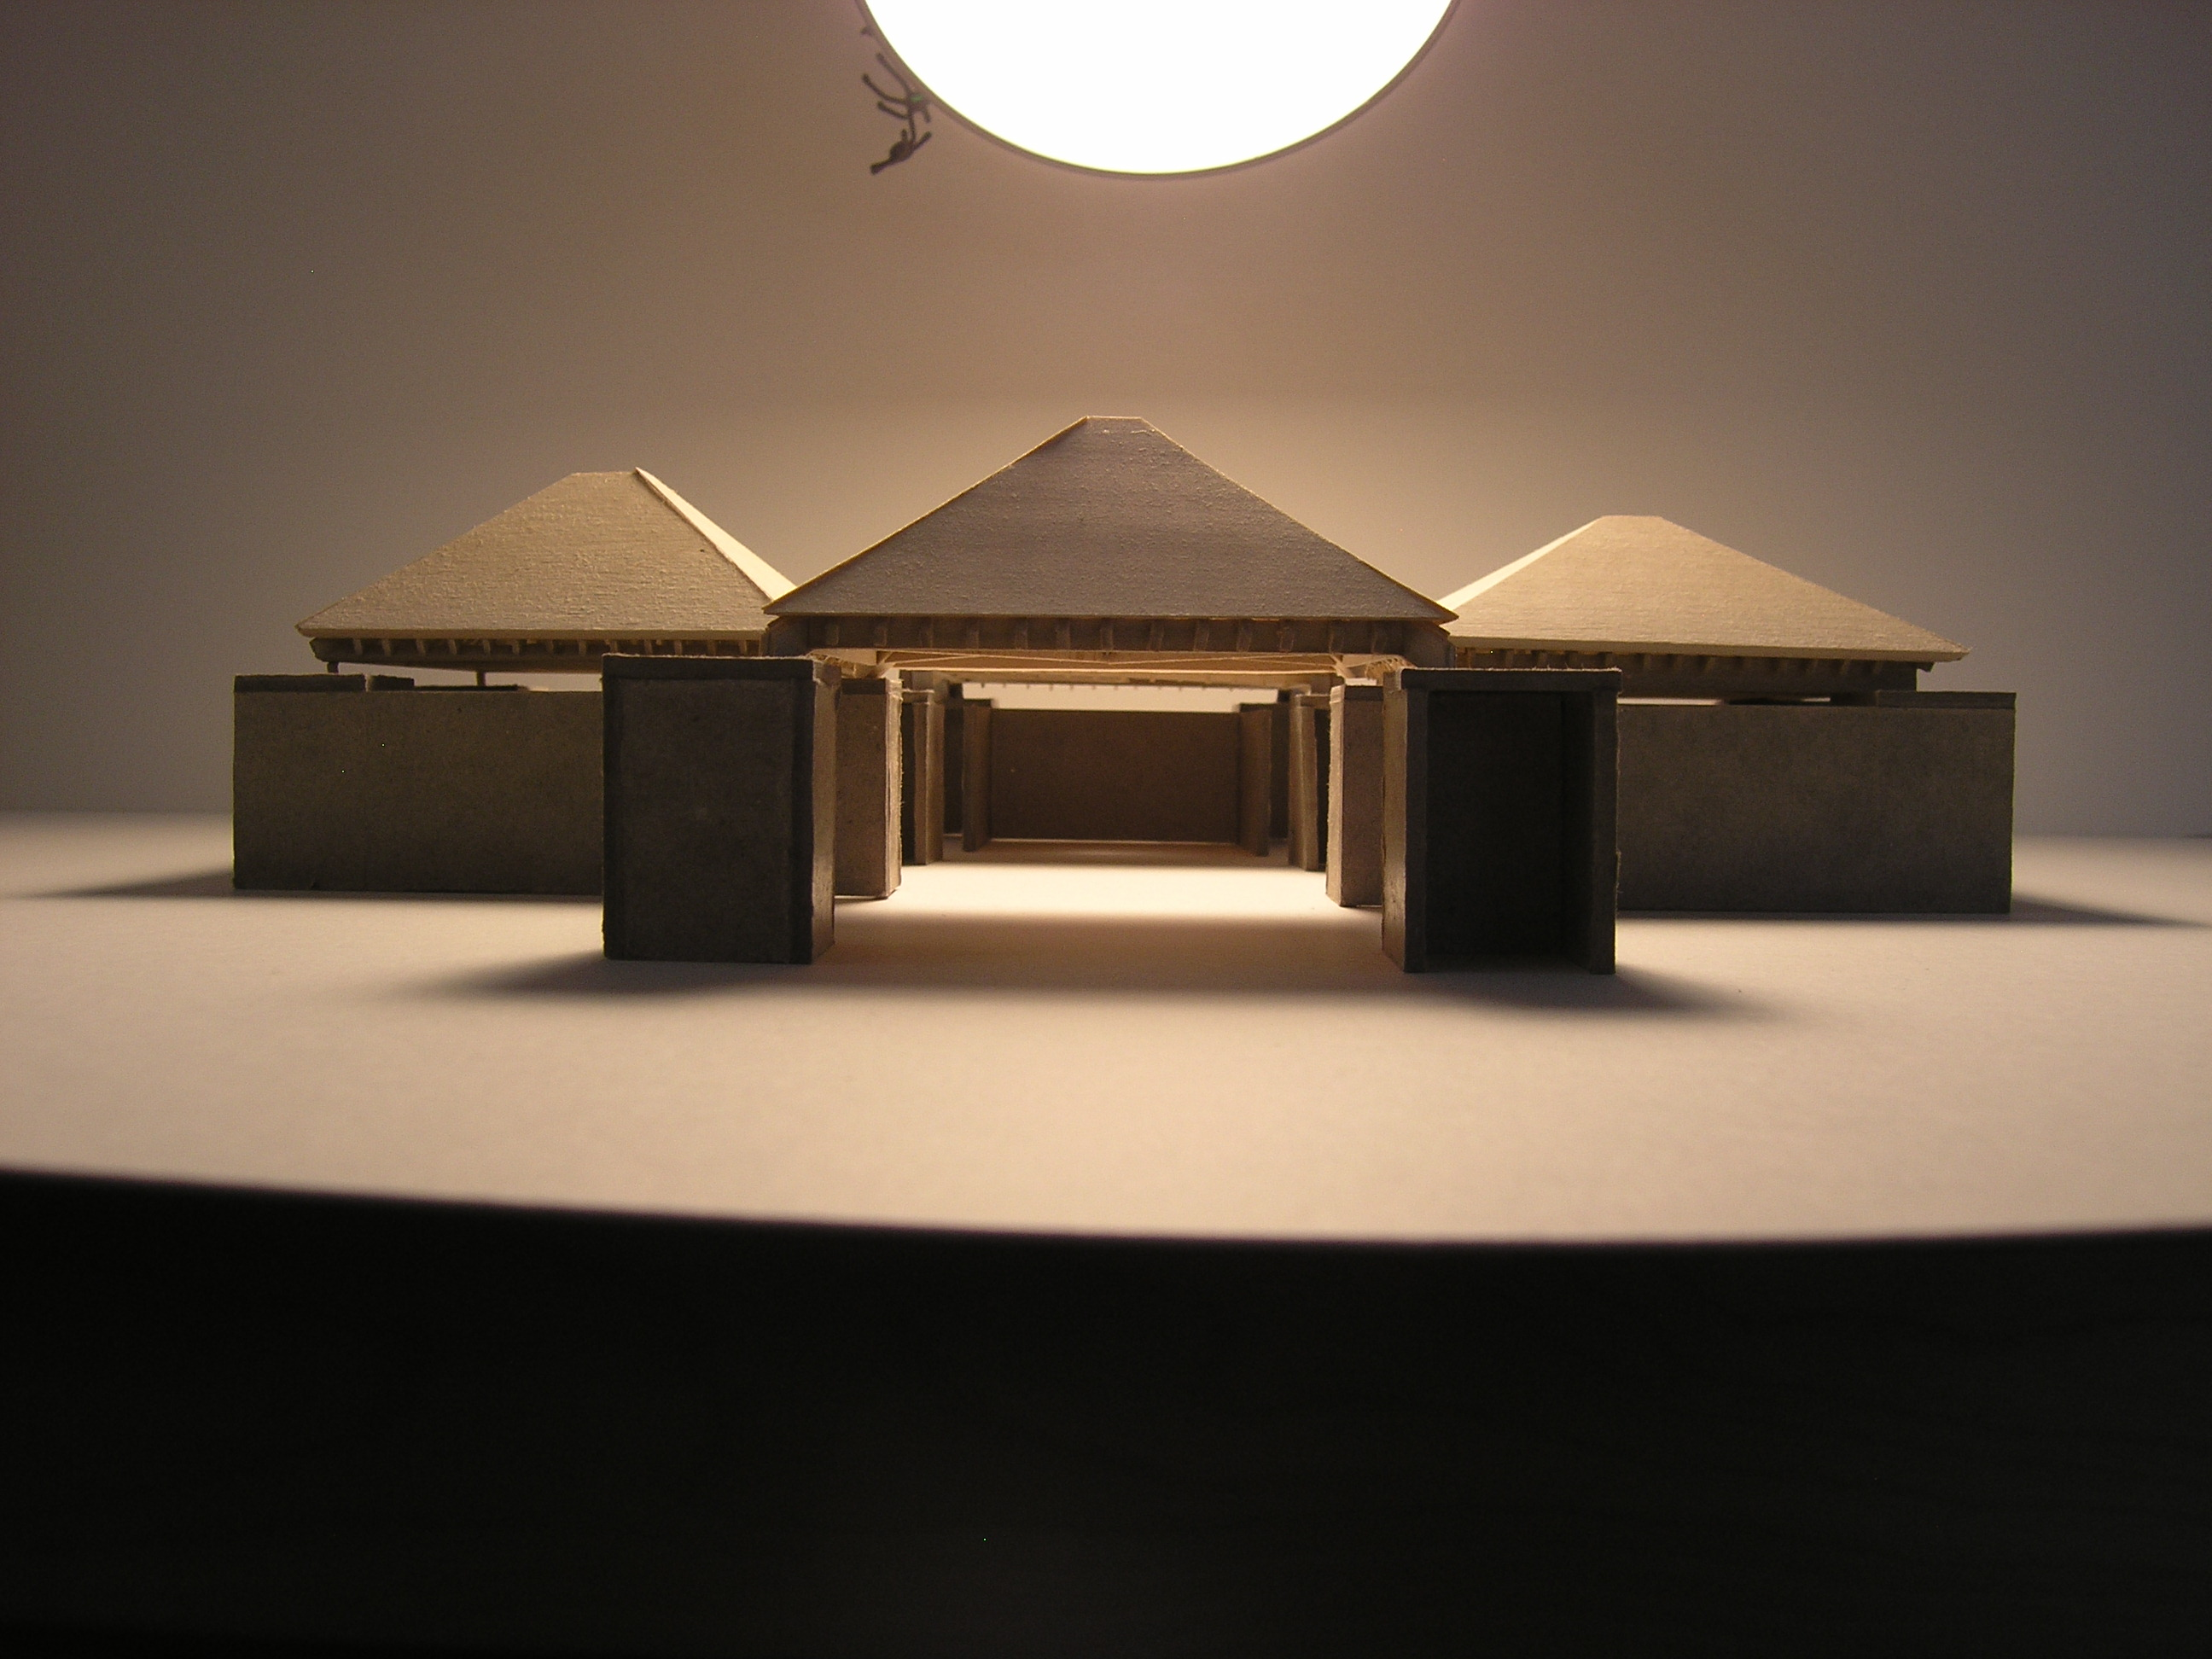 file trenton bath house model light